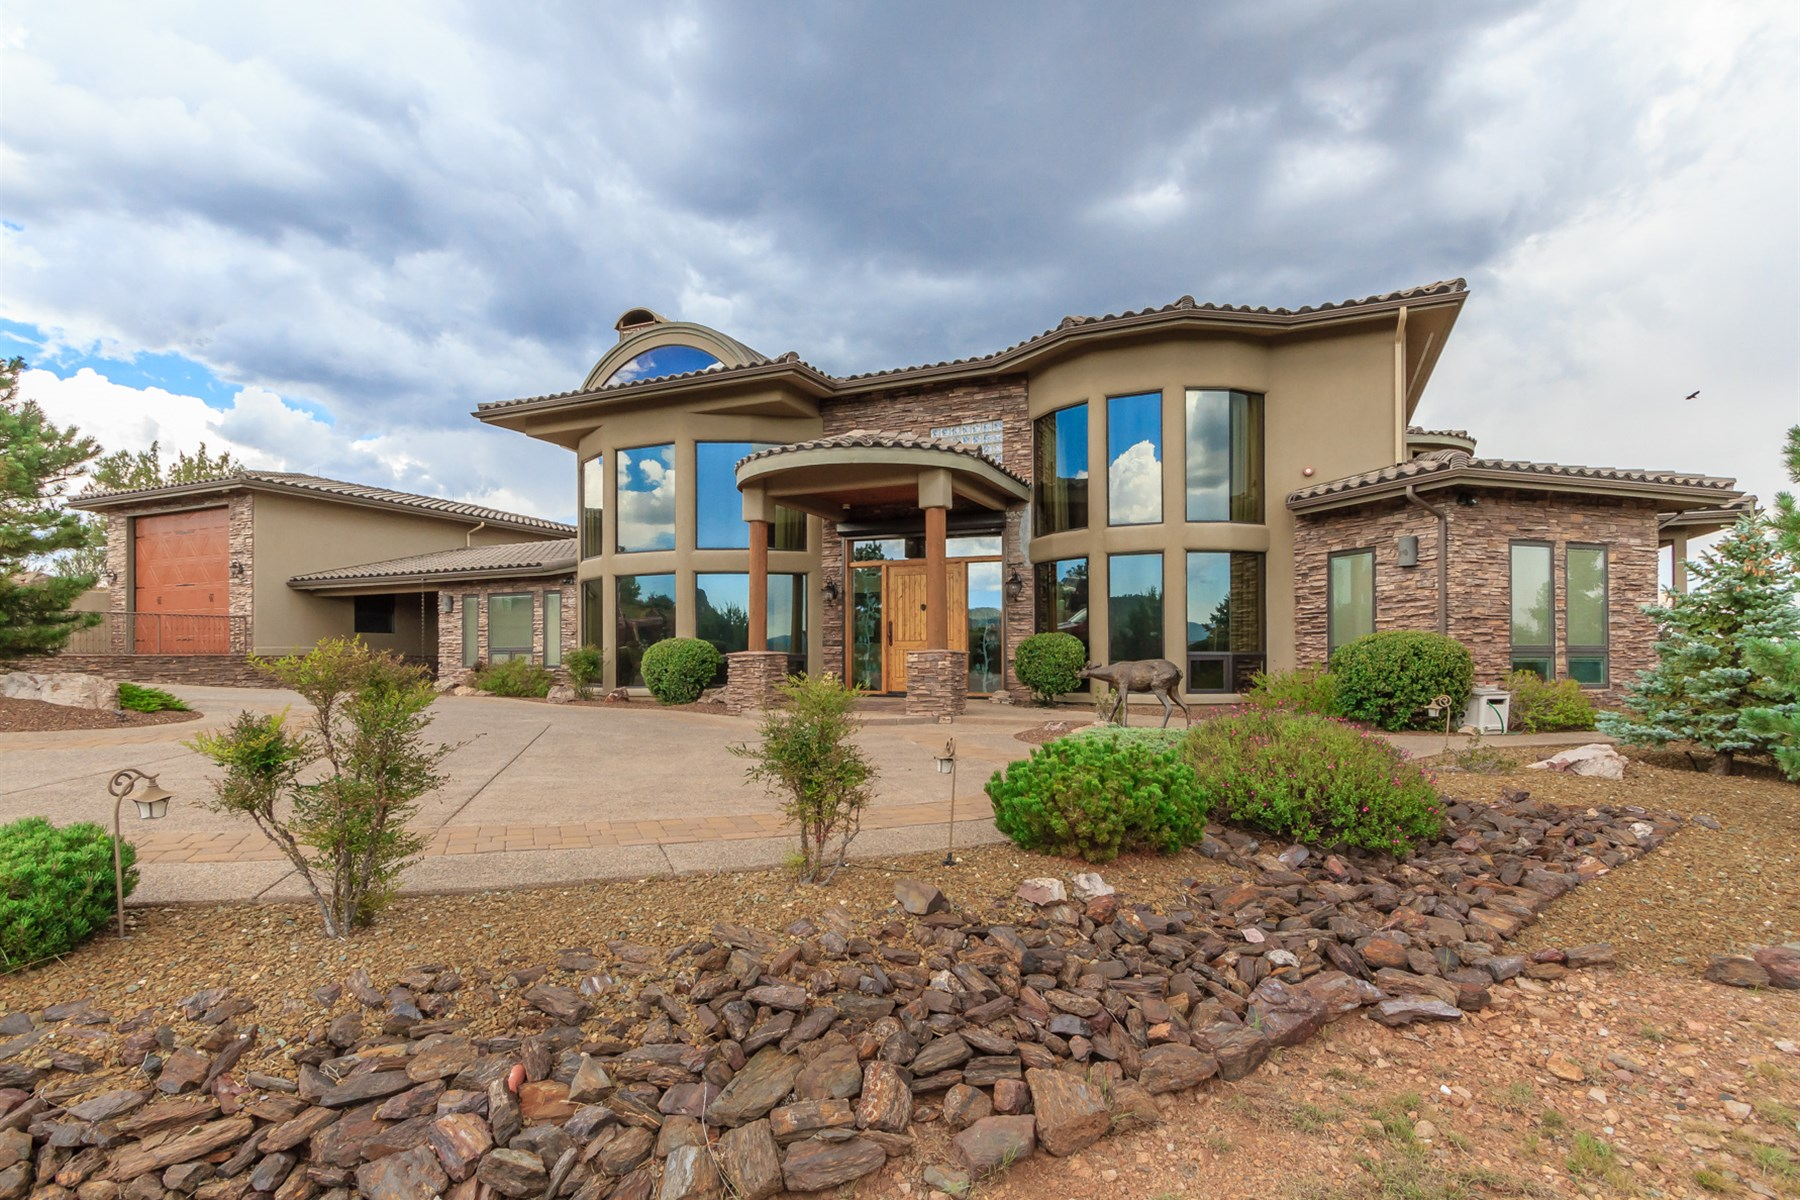 Vivienda unifamiliar por un Venta en Magnificant custom home near the highest point in forest trails 2004 PROMONTORY Prescott, Arizona 86305 Estados Unidos